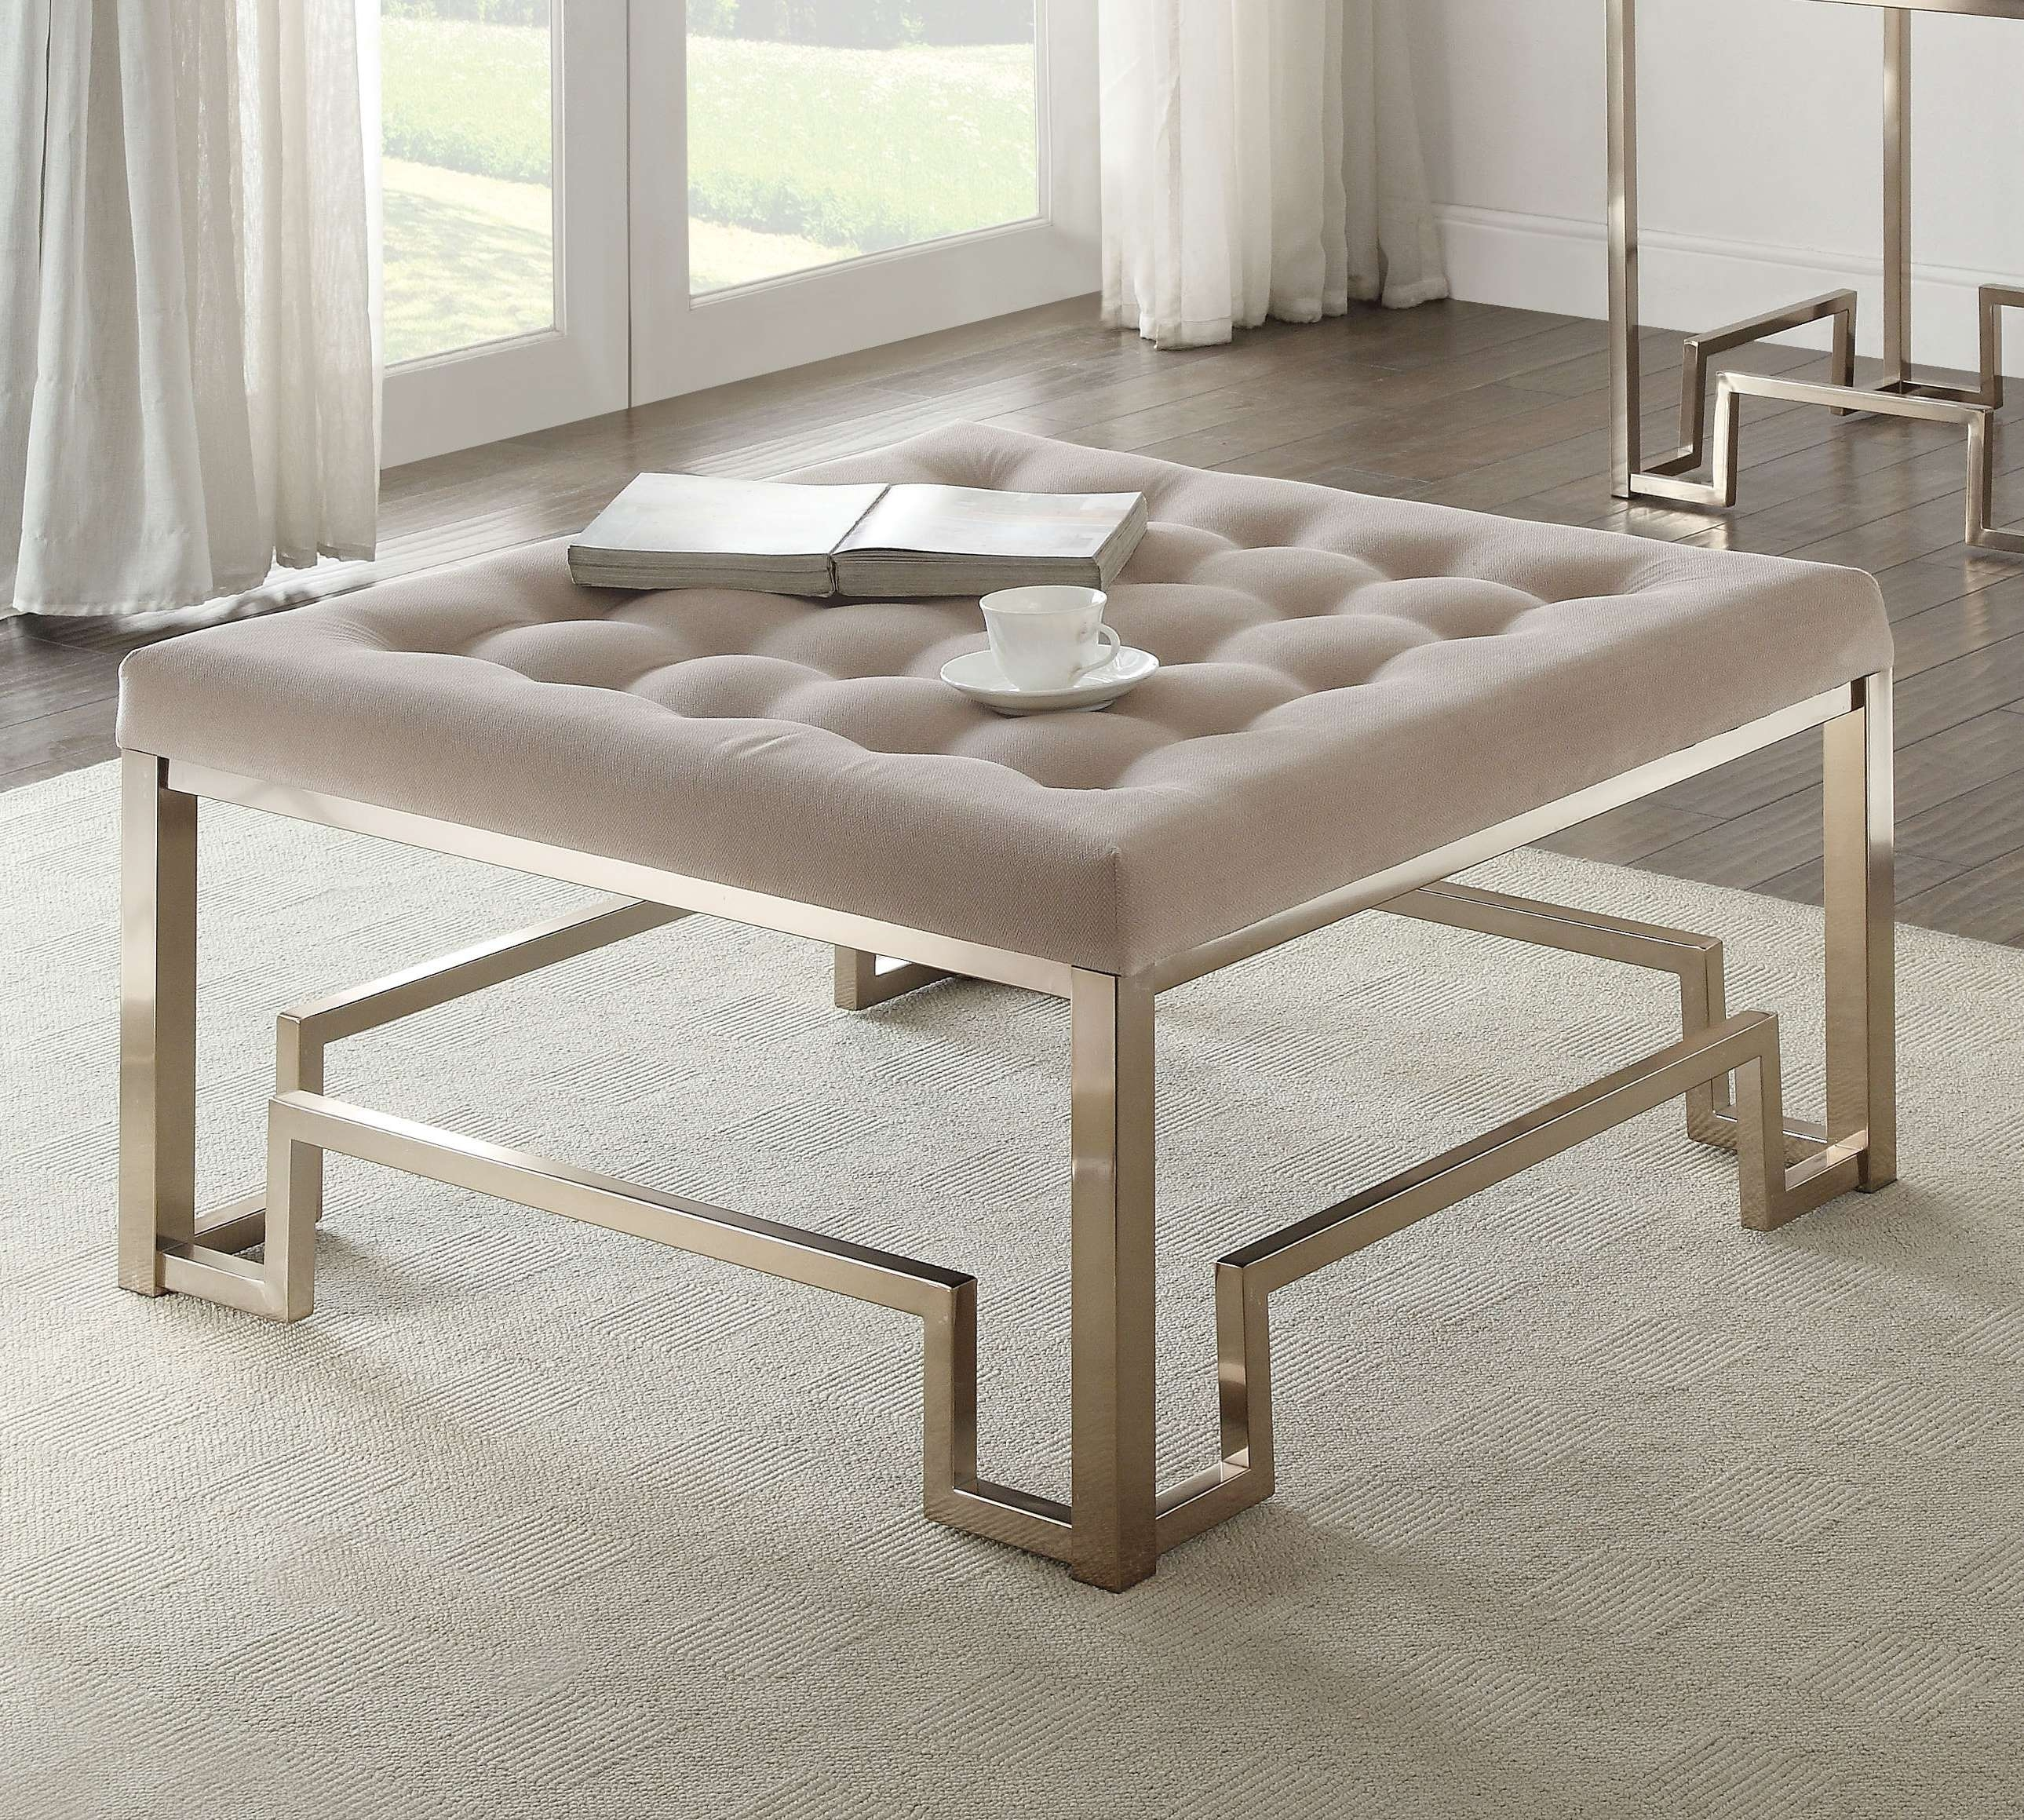 Wayfair With Most Popular Fabric Coffee Tables (View 17 of 20)